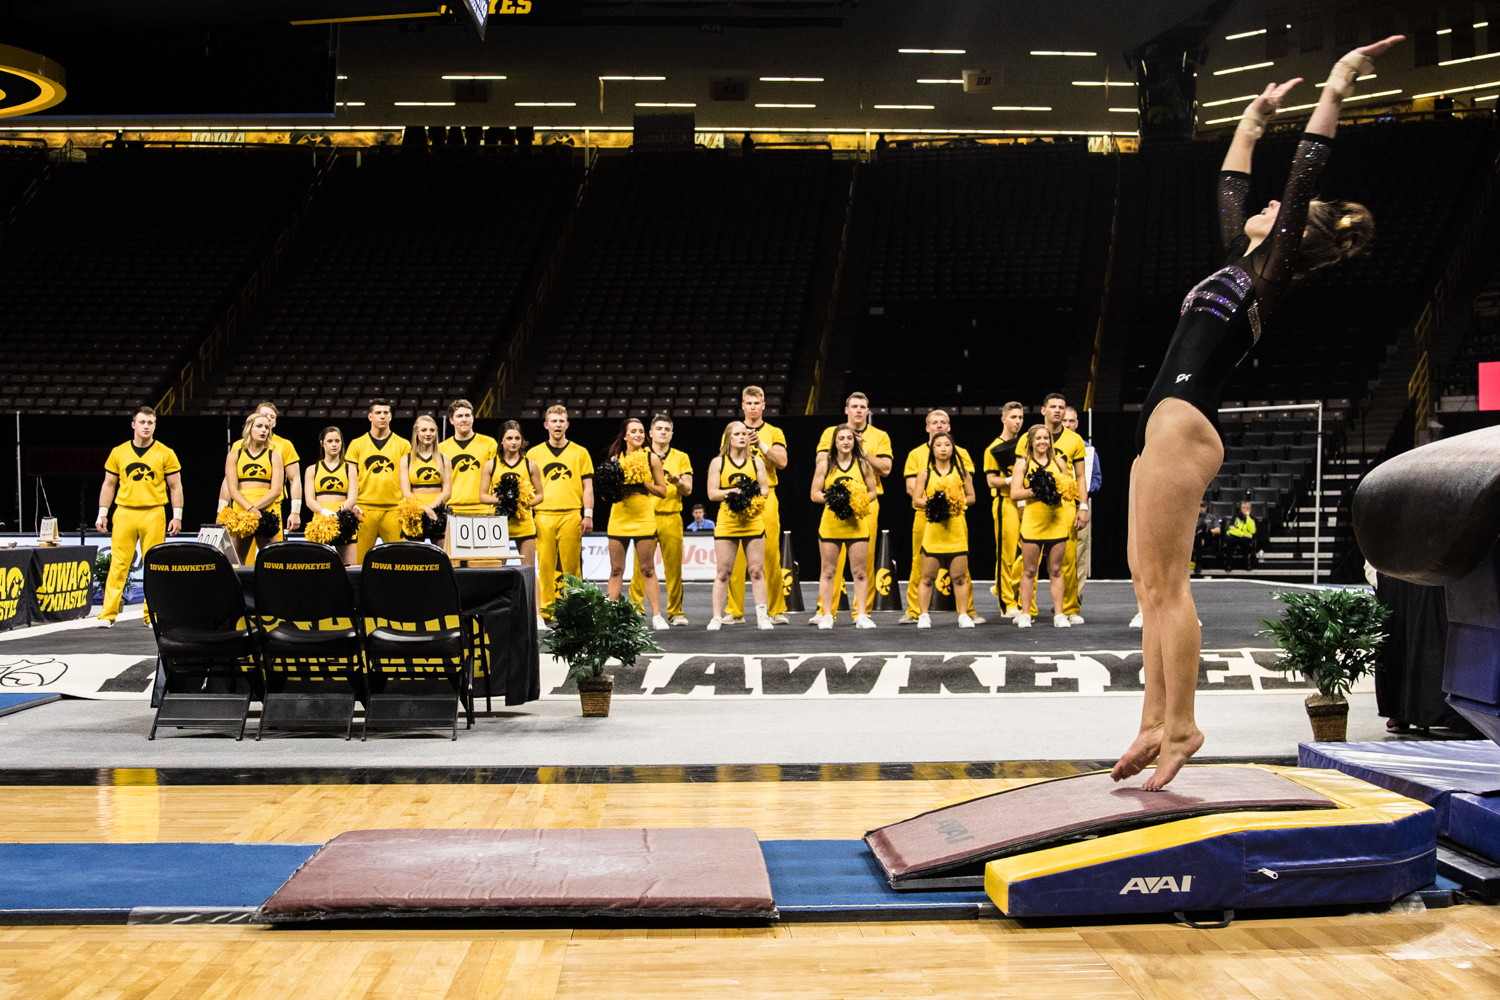 Iowa%27s+Bridget+Killian+competes+on+the+vault+during+a+women%27s+gymnastics+meet+between+Iowa+and+Iowa+State+at+Carver-Hawkeye+Arena+on+Friday%2C+March+1%2C+2019.+Killian+scored+9.825+in+the+event.+The+Hawkeyes%2C+celebrating+senior+night%2C+fell+to+the+Cyclones%2C+196.275-196.250.+